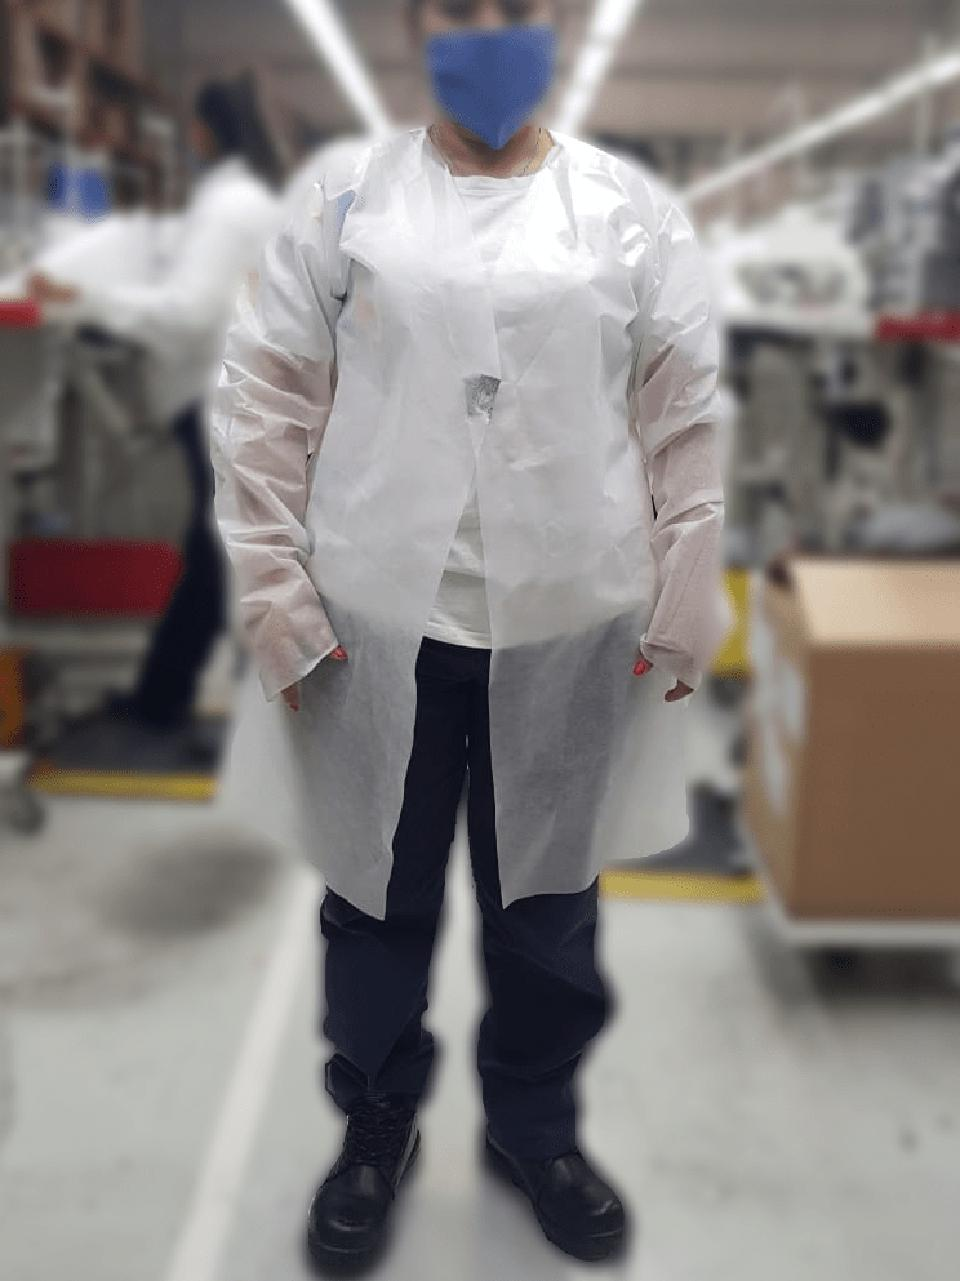 Faurecia protective gown and mask.